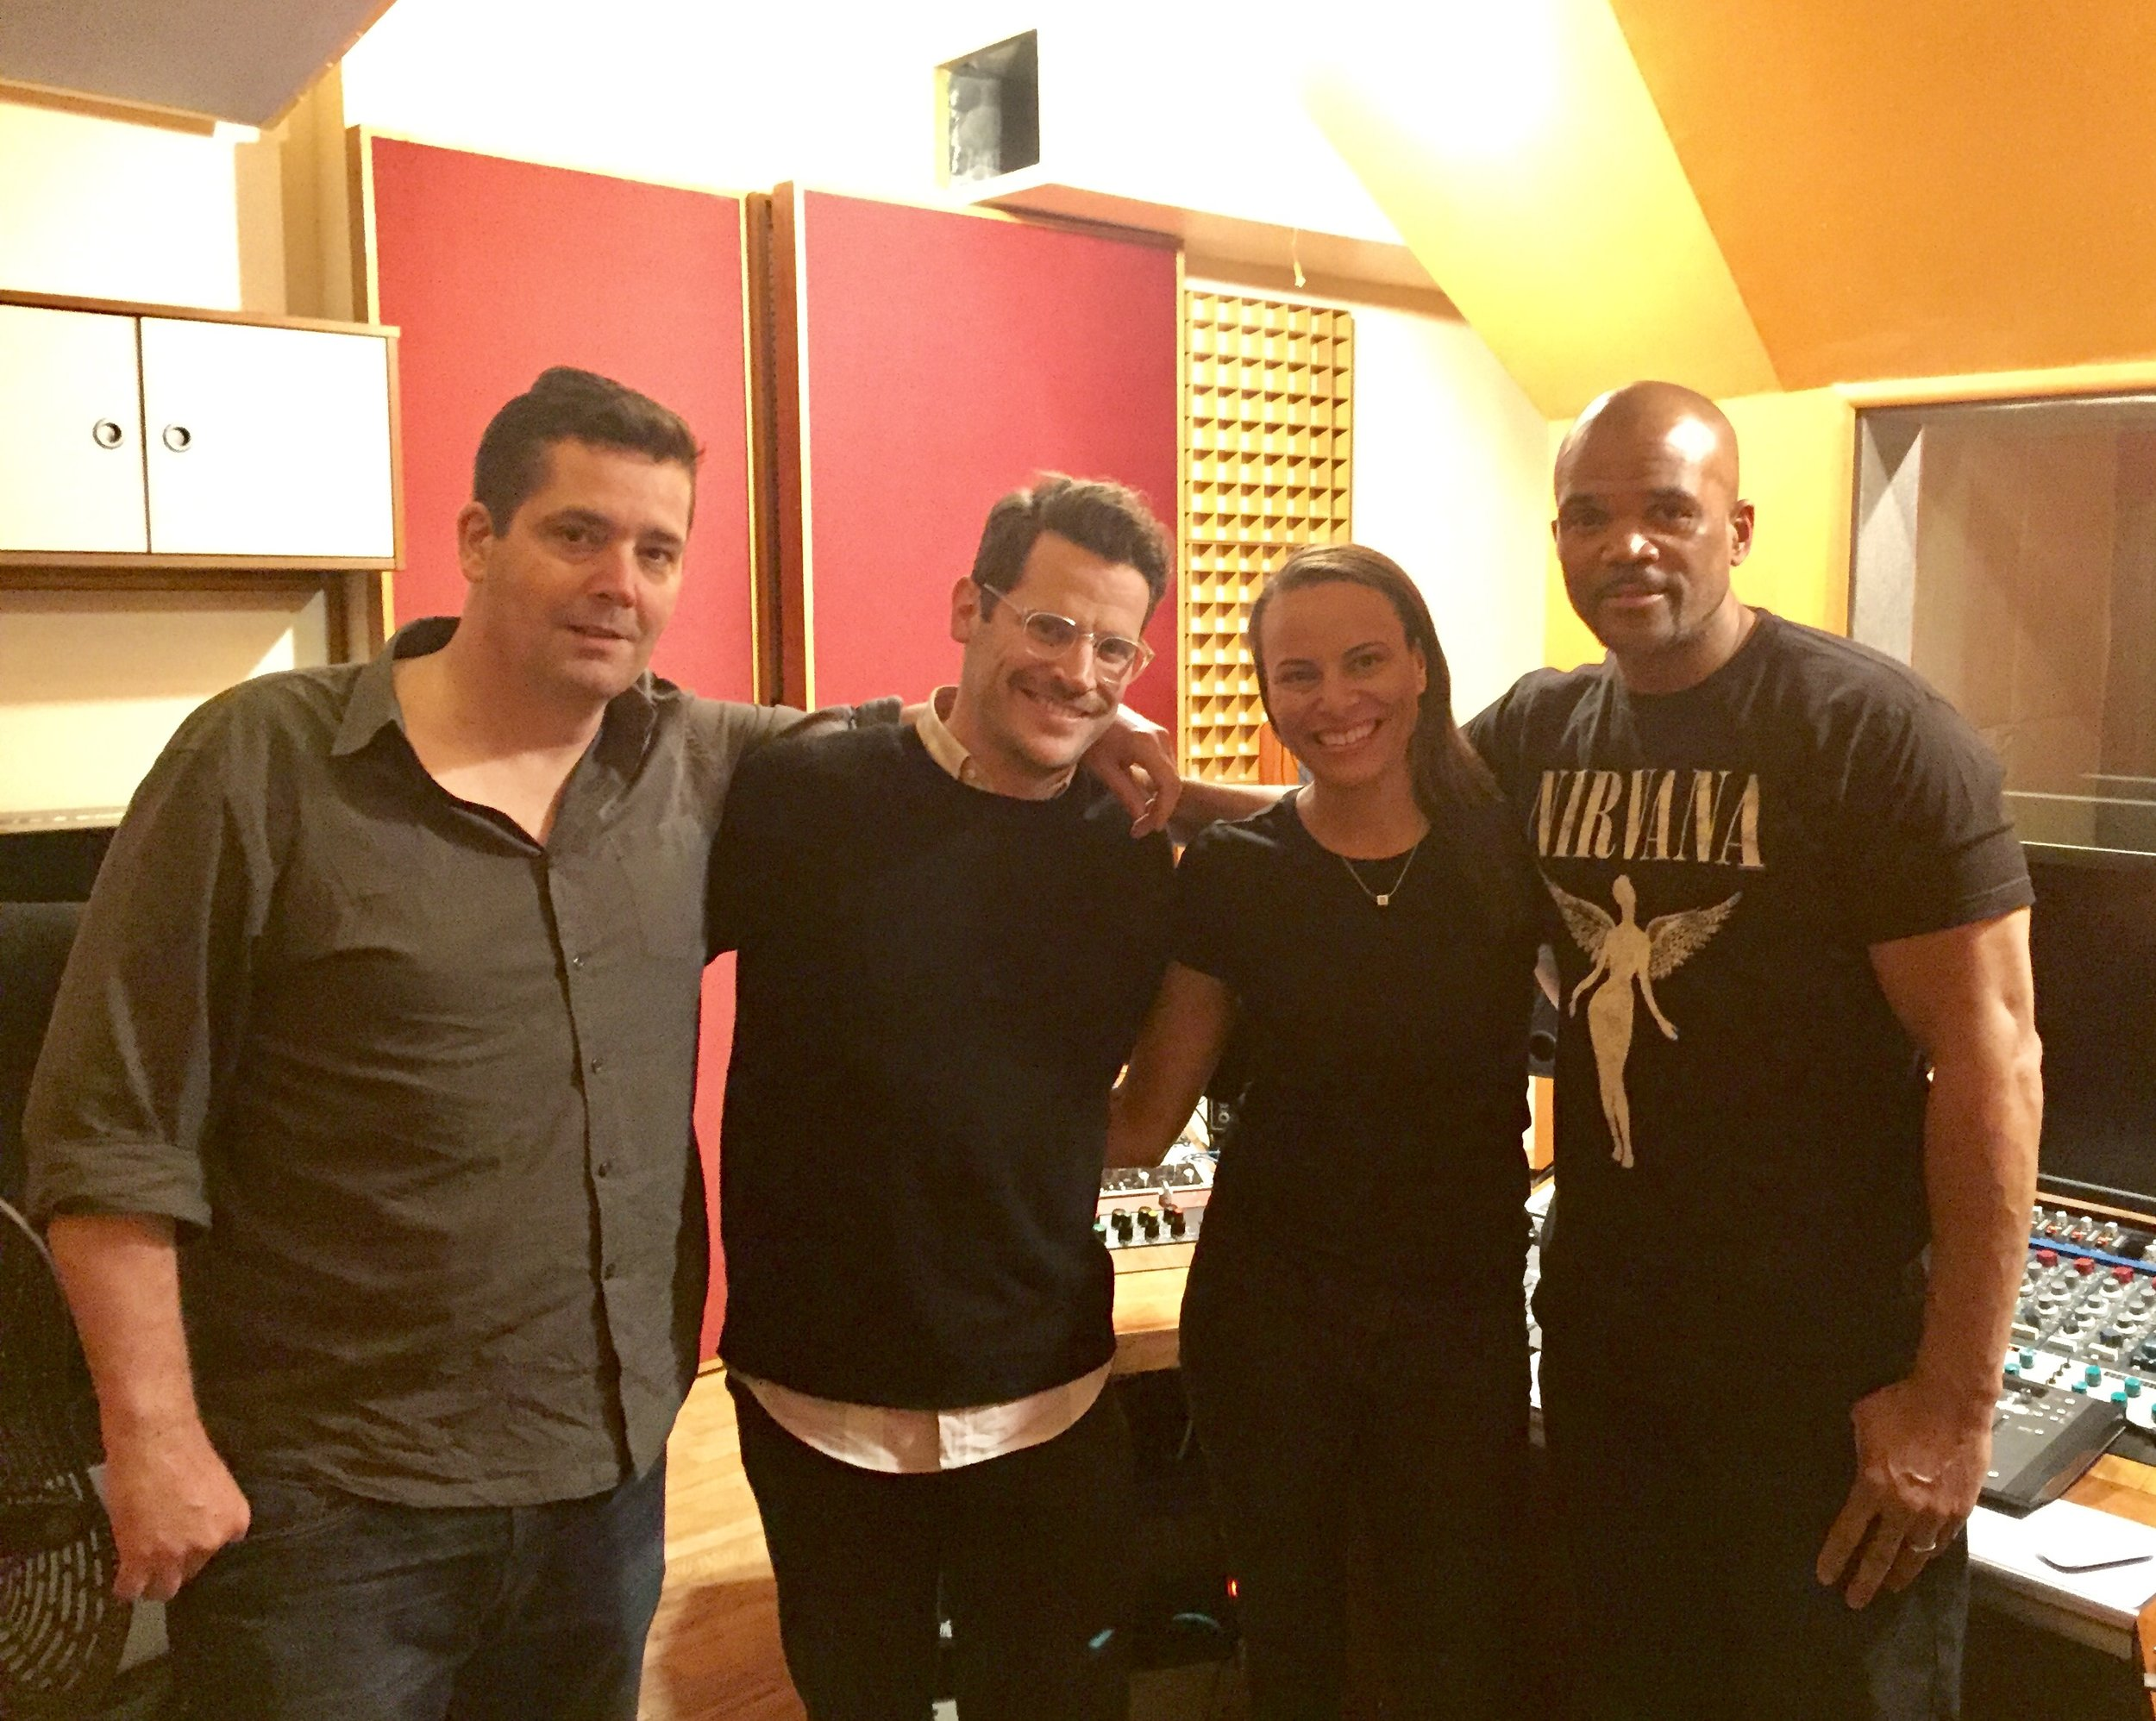 July: A Conversation w/Darryl McDaniels: Season 2, Episode 18   Post-interview in the studio with my amazing team and the one and only Darryl McDaniels, DMC of RUN DMC.